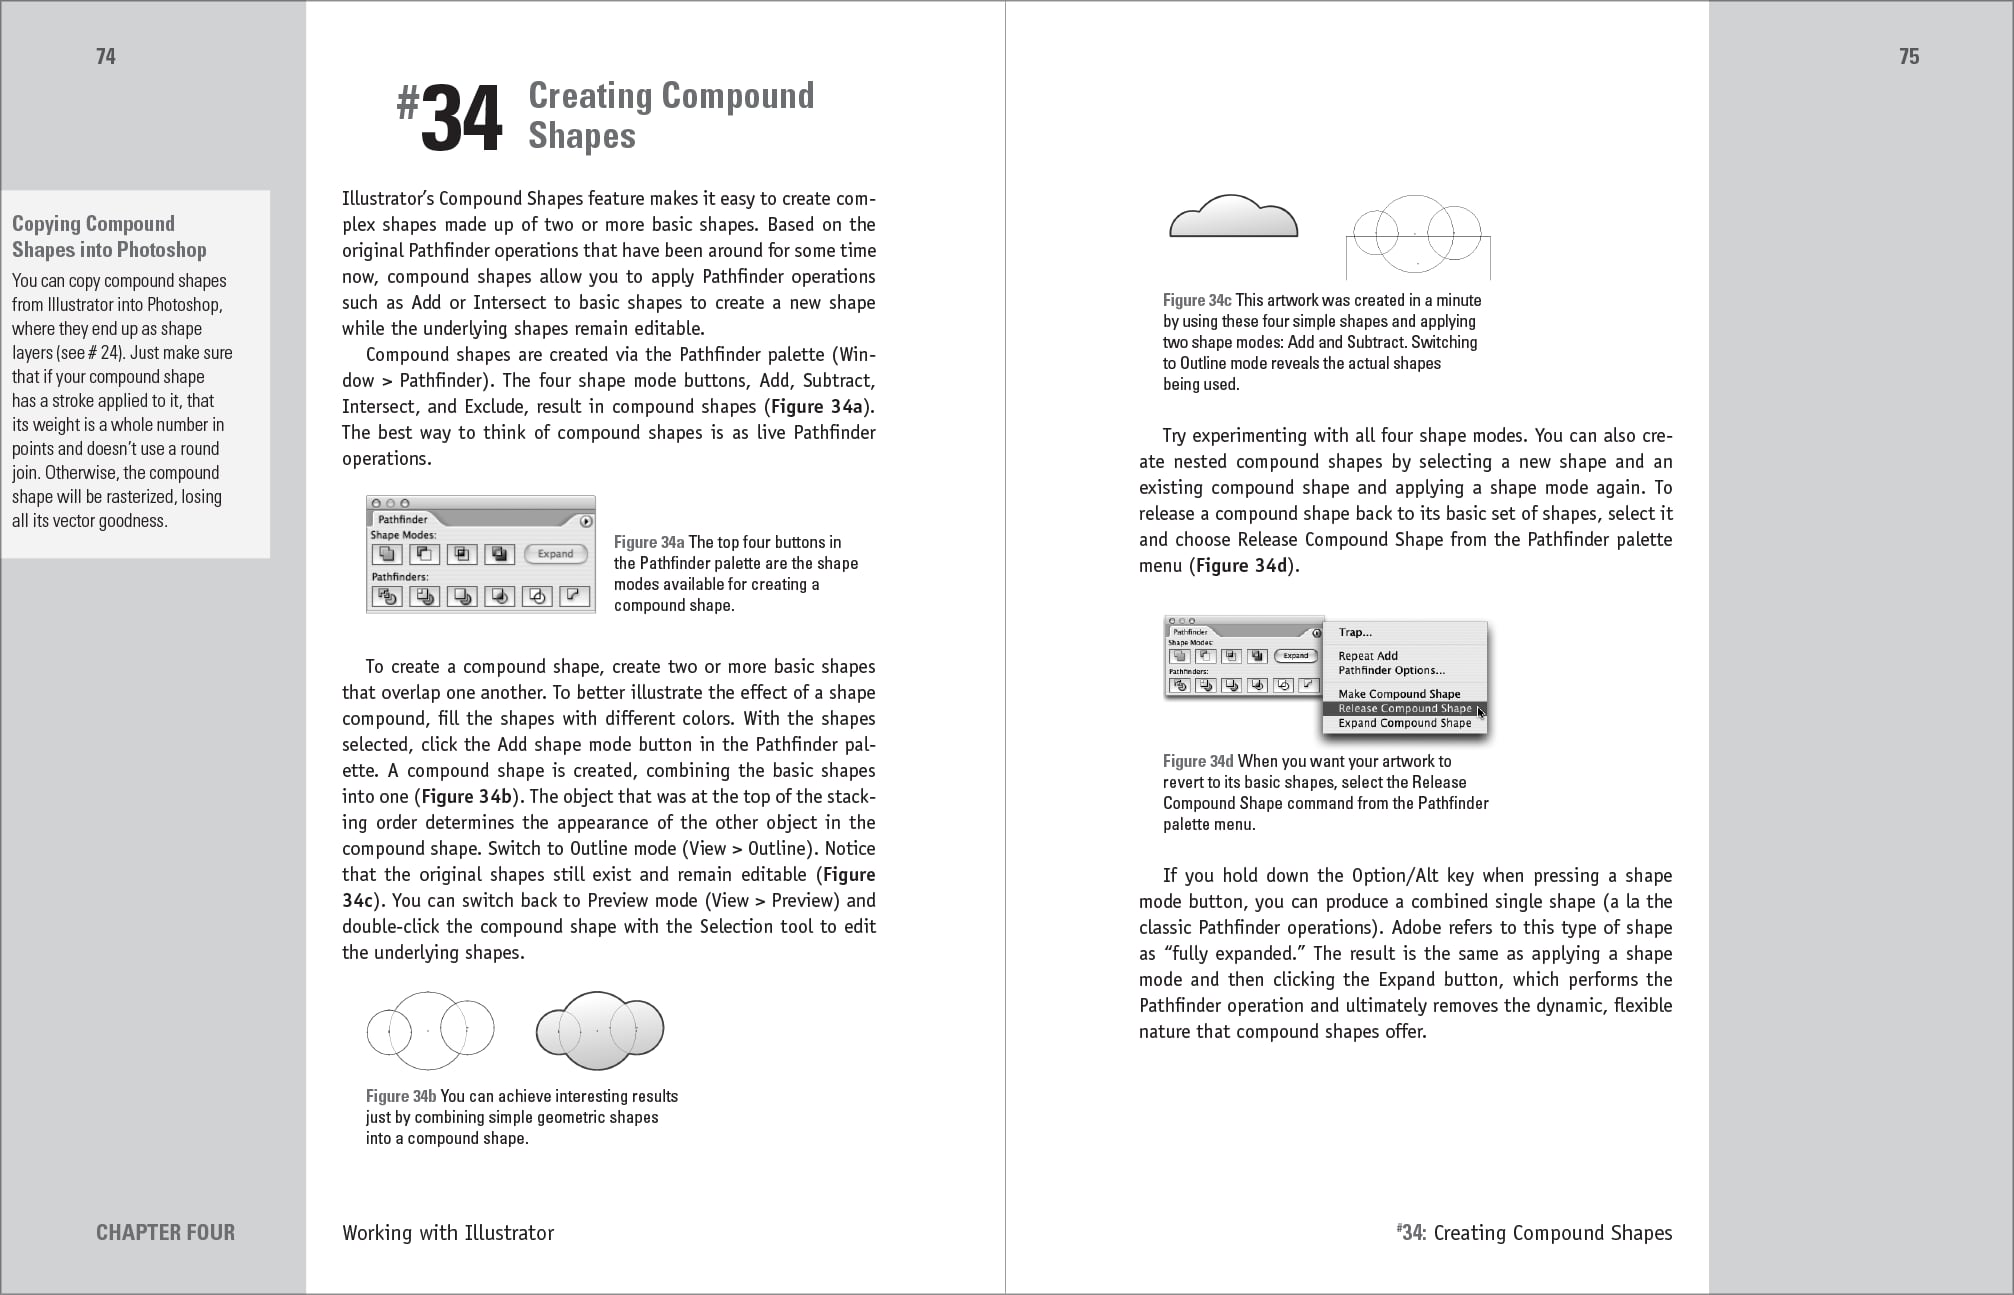 Spread of Adobe Creative Suite 2 How-To's book